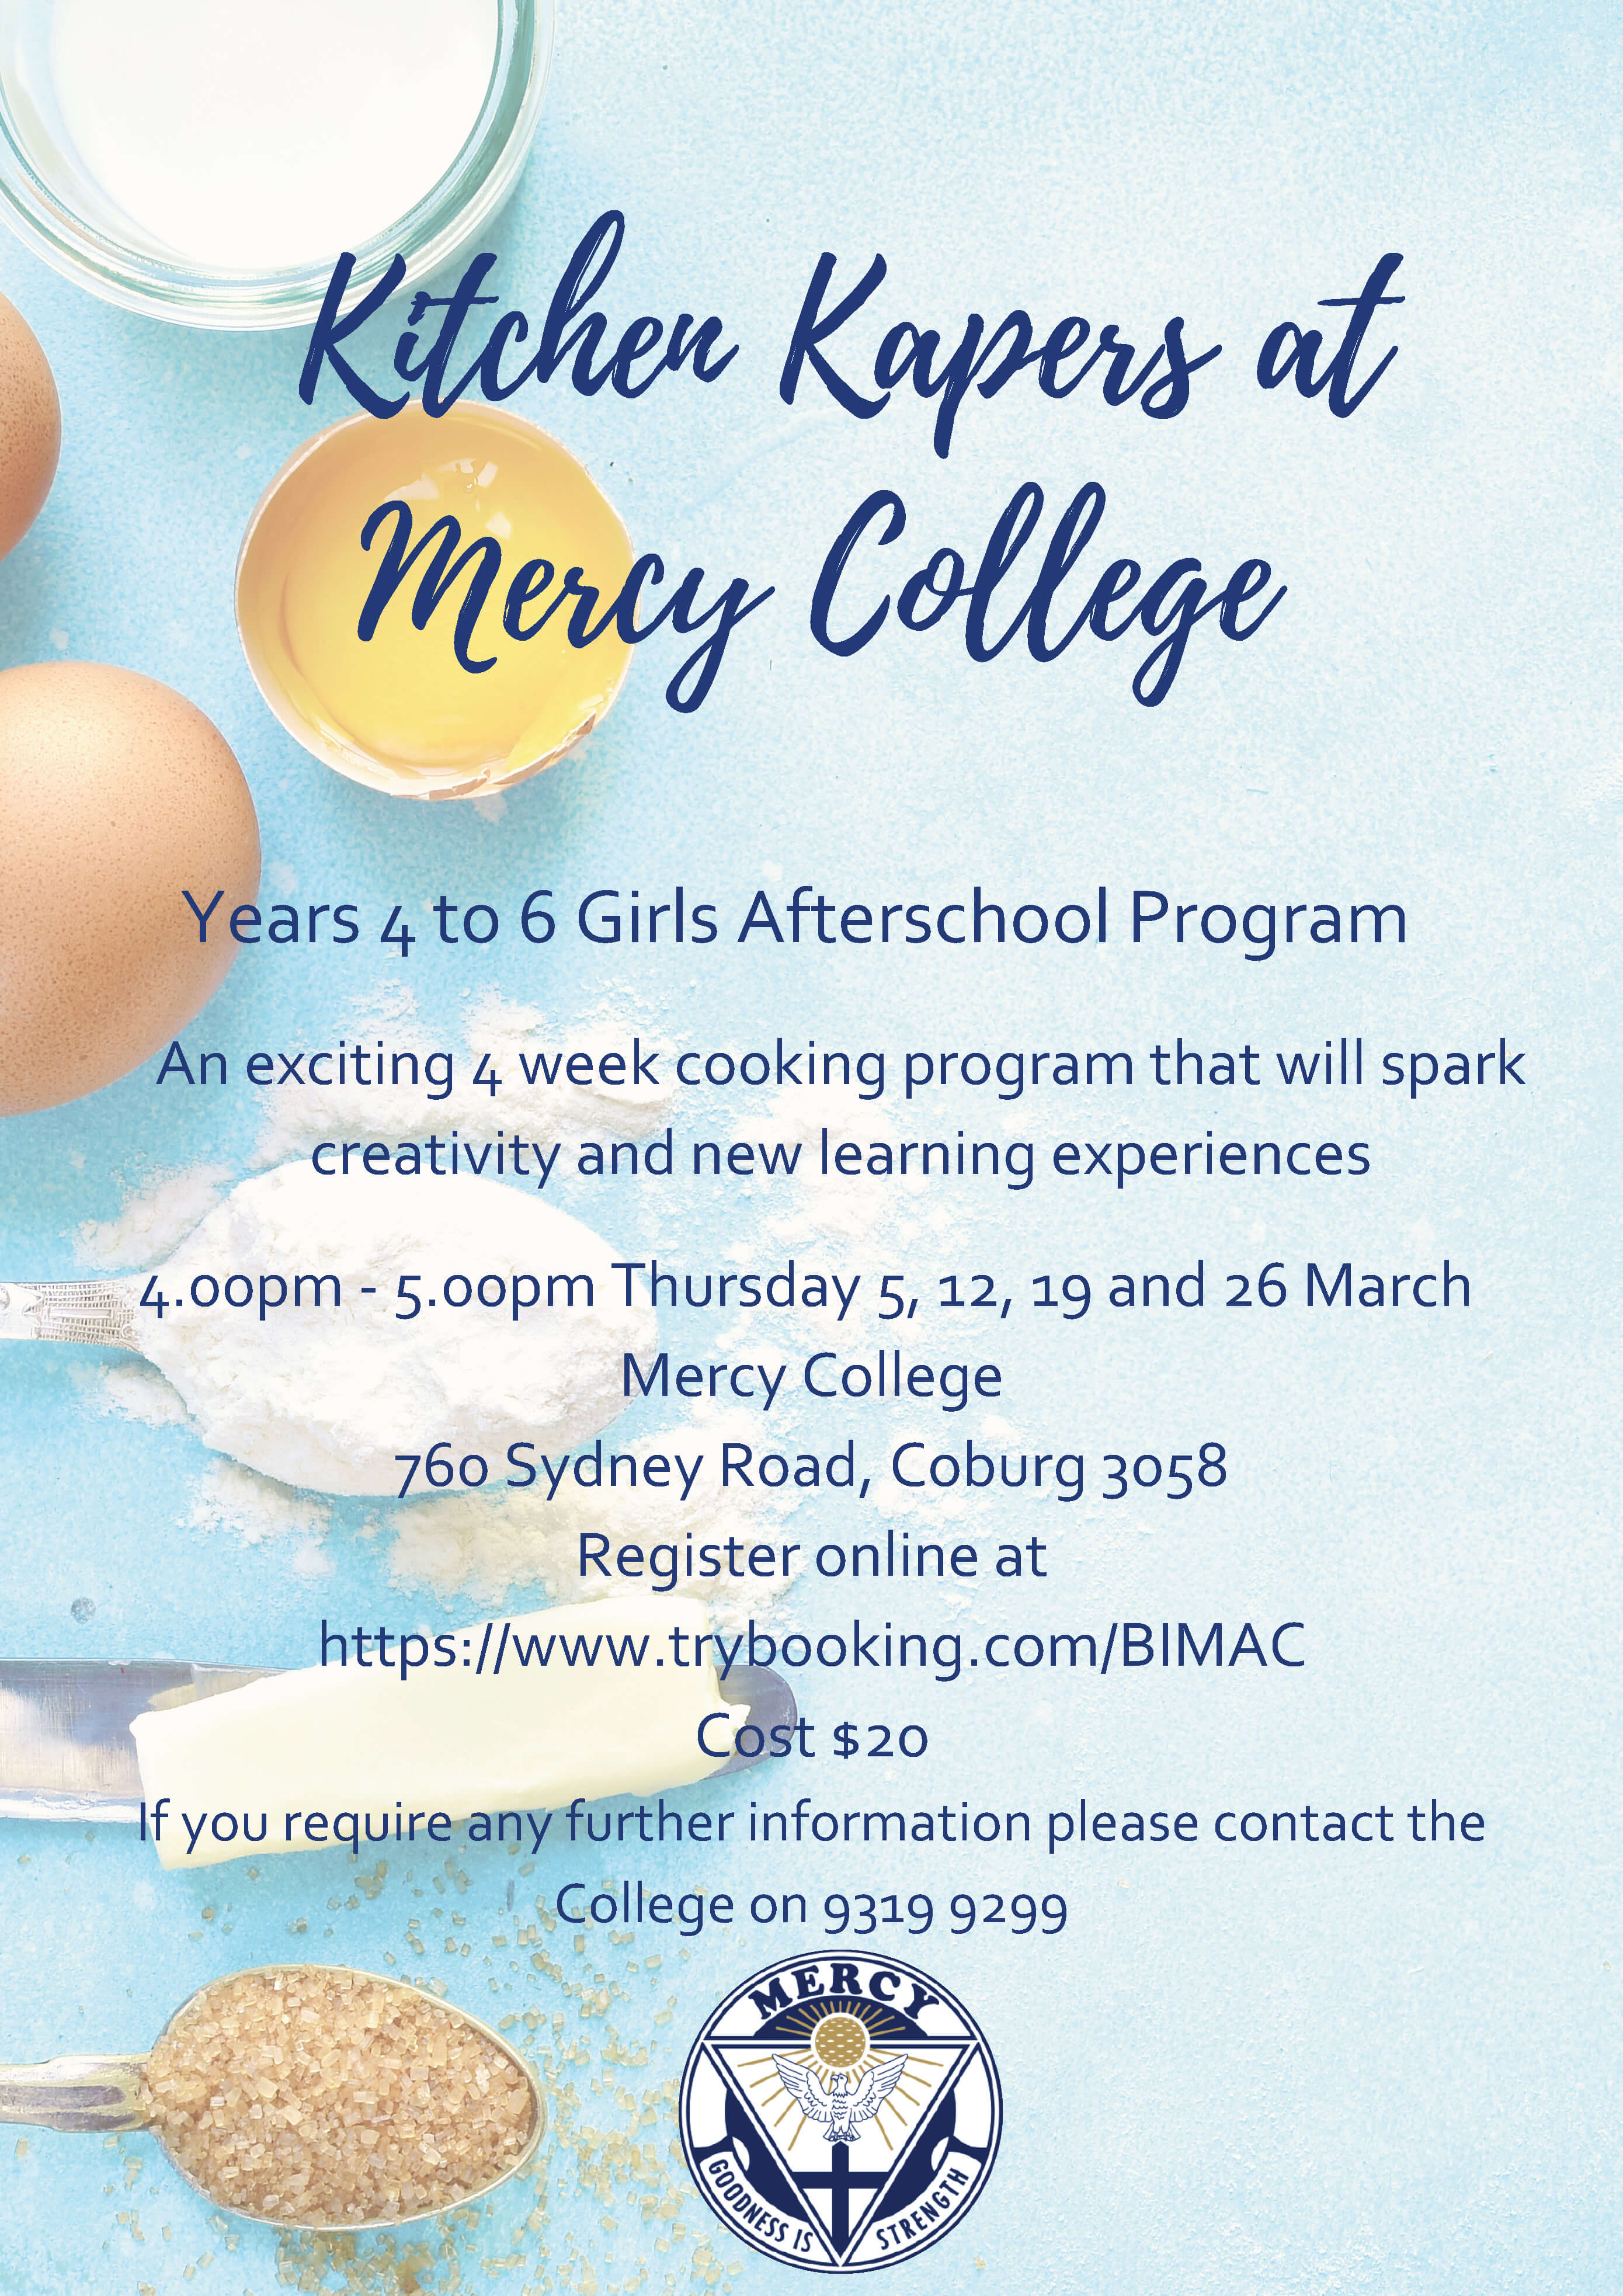 Kitchen Kapers Years 4 to 6 Program